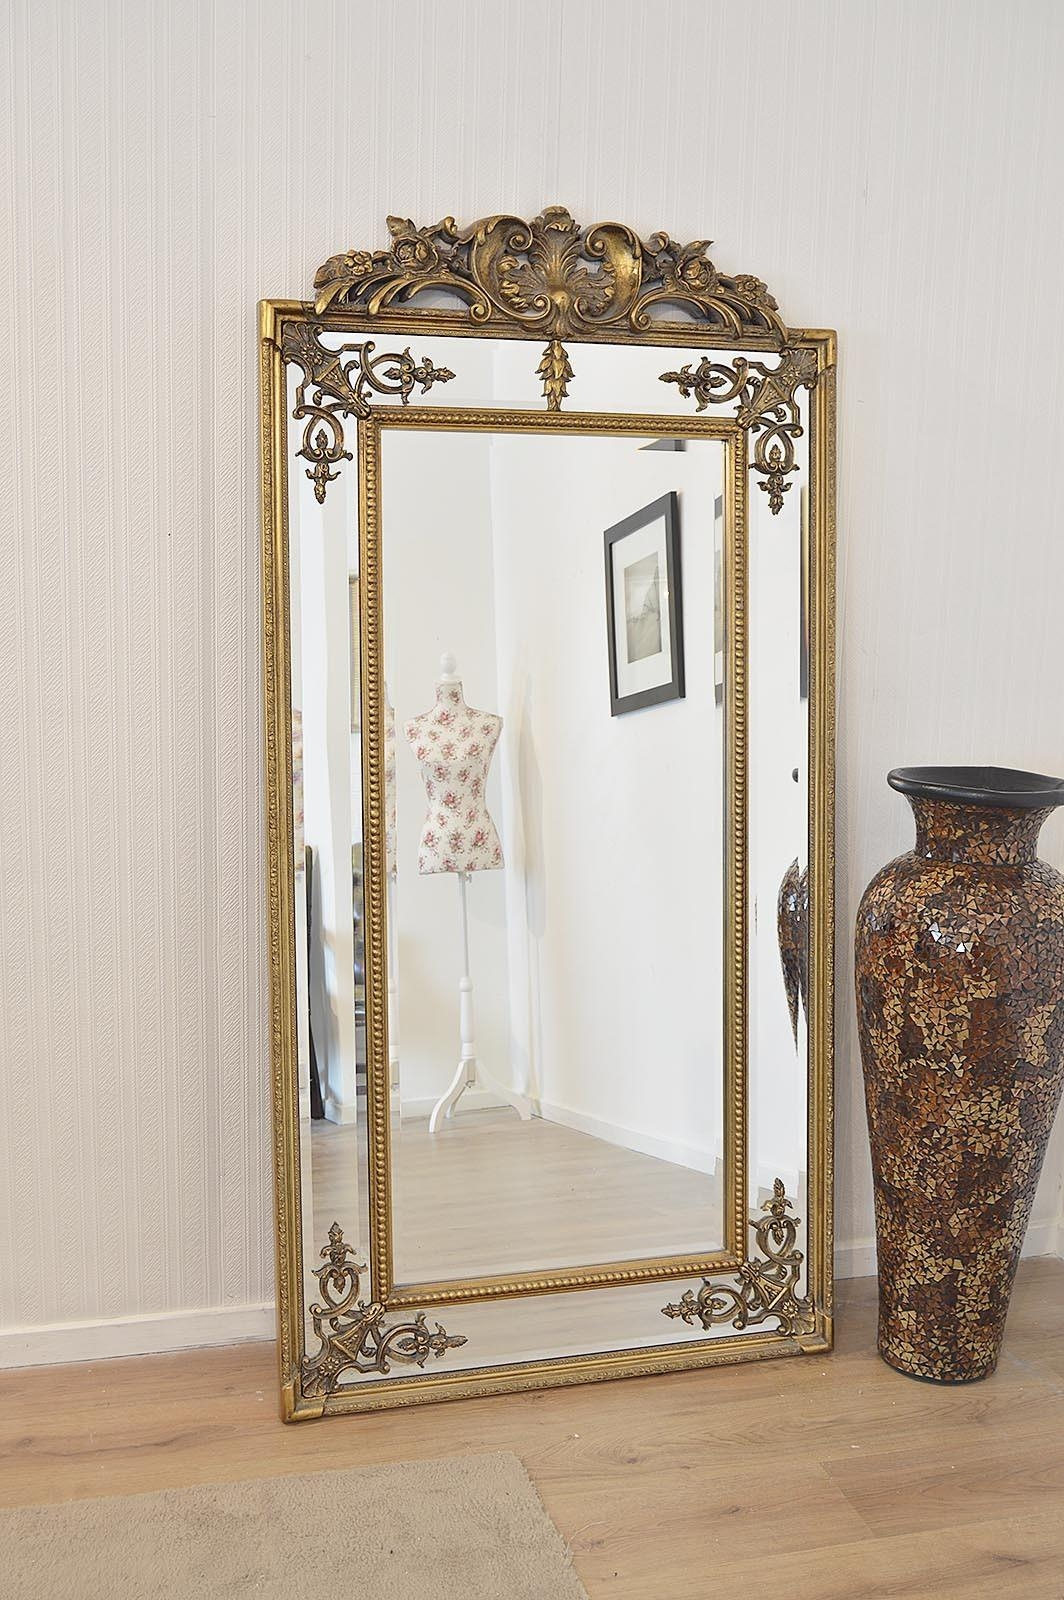 Ornate Mirrors For Sale 61 Beautiful Decoration Also Large Gold Within Antique Mirrors For Sale (View 7 of 16)